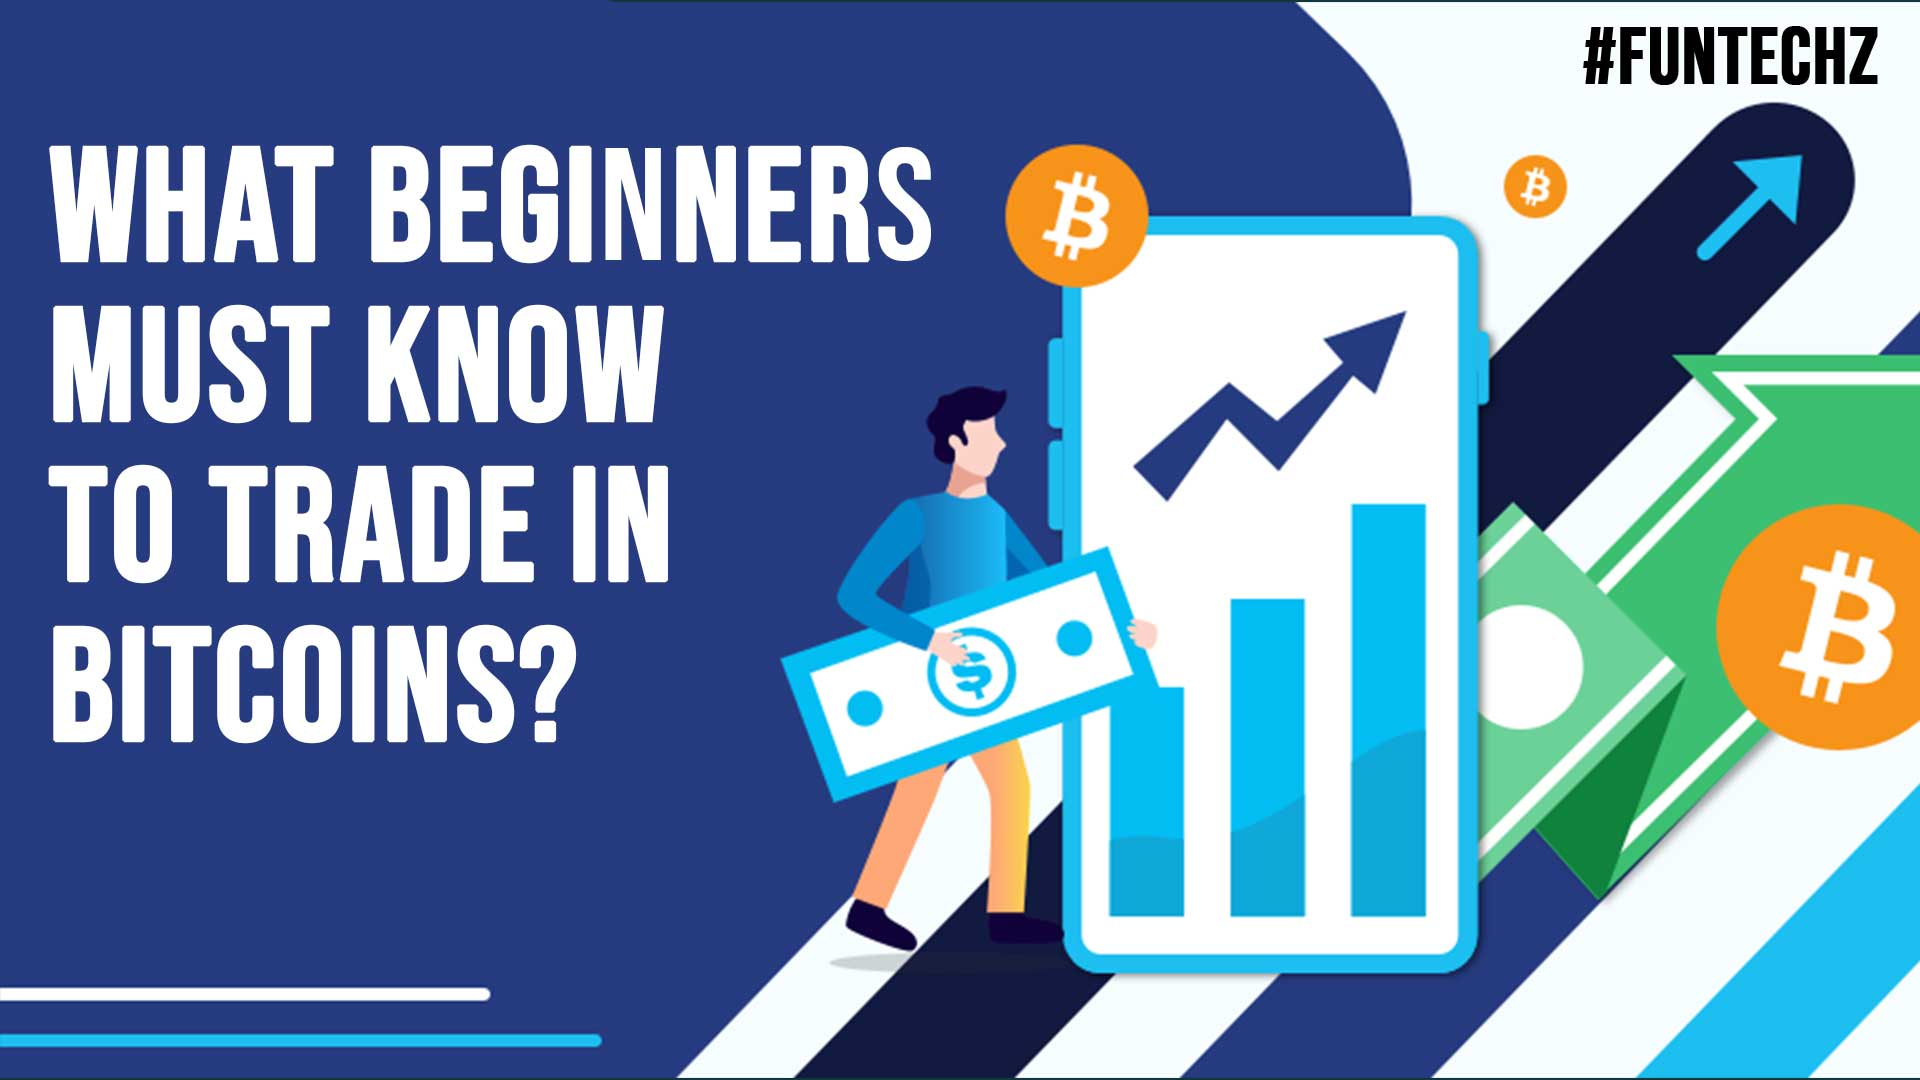 What Beginners Must Know To Trade In Bitcoins